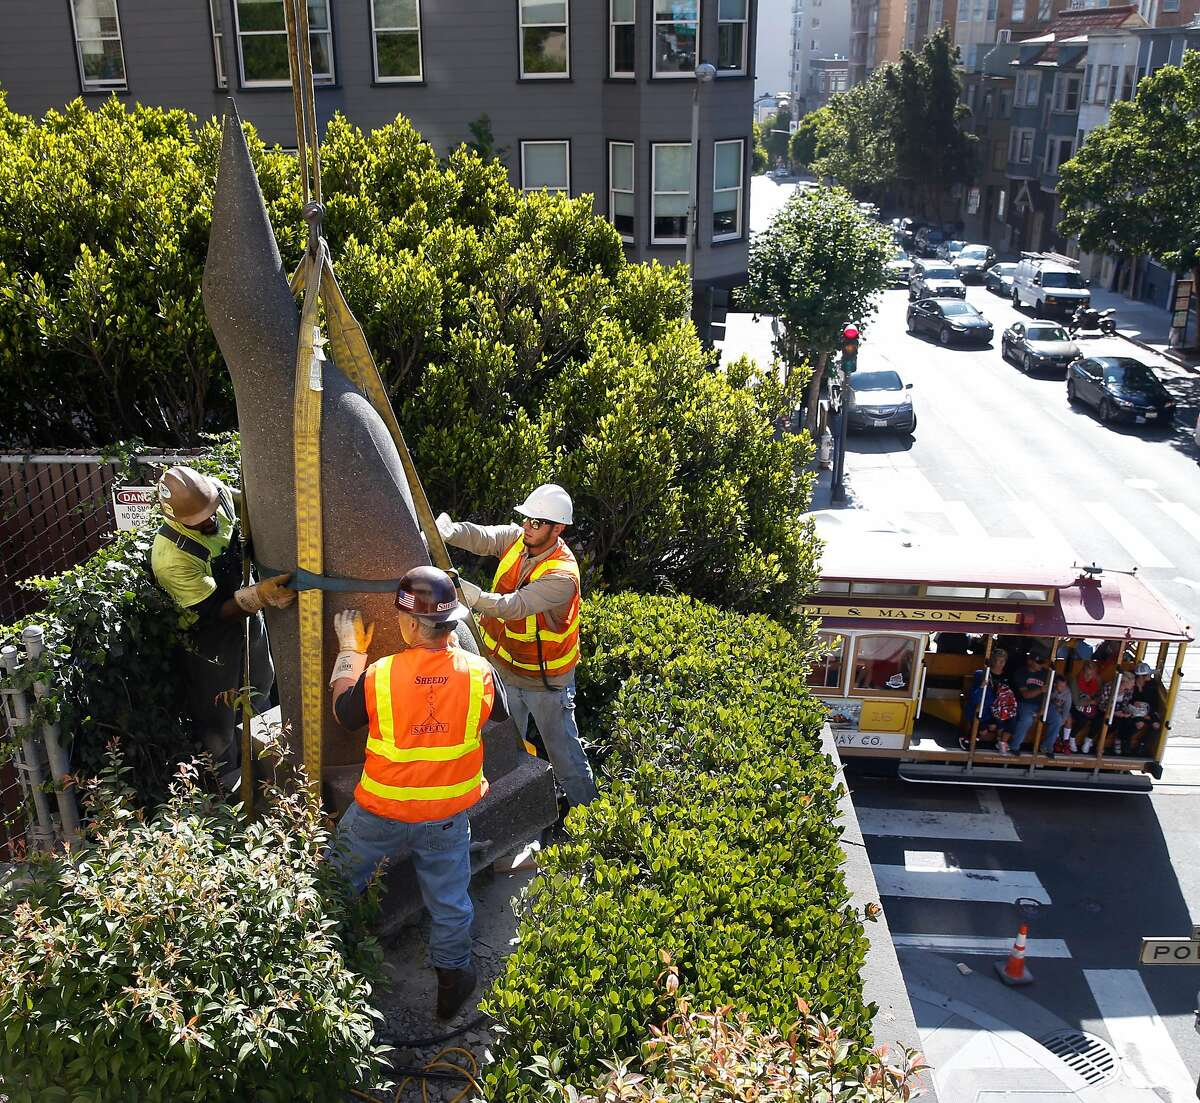 A penguin sculpture by Beniamino Bufano installed in the back corner of the Stanford Court Hotel is prepped for removal by a crane crew from its perch above Pine and Powell streets in San Francisco, Calif. on Saturday, July 22, 2017. The penguin will be restored and reinstalled in the main entrance to the hotel, which is undergoing a renovation, on California Street.